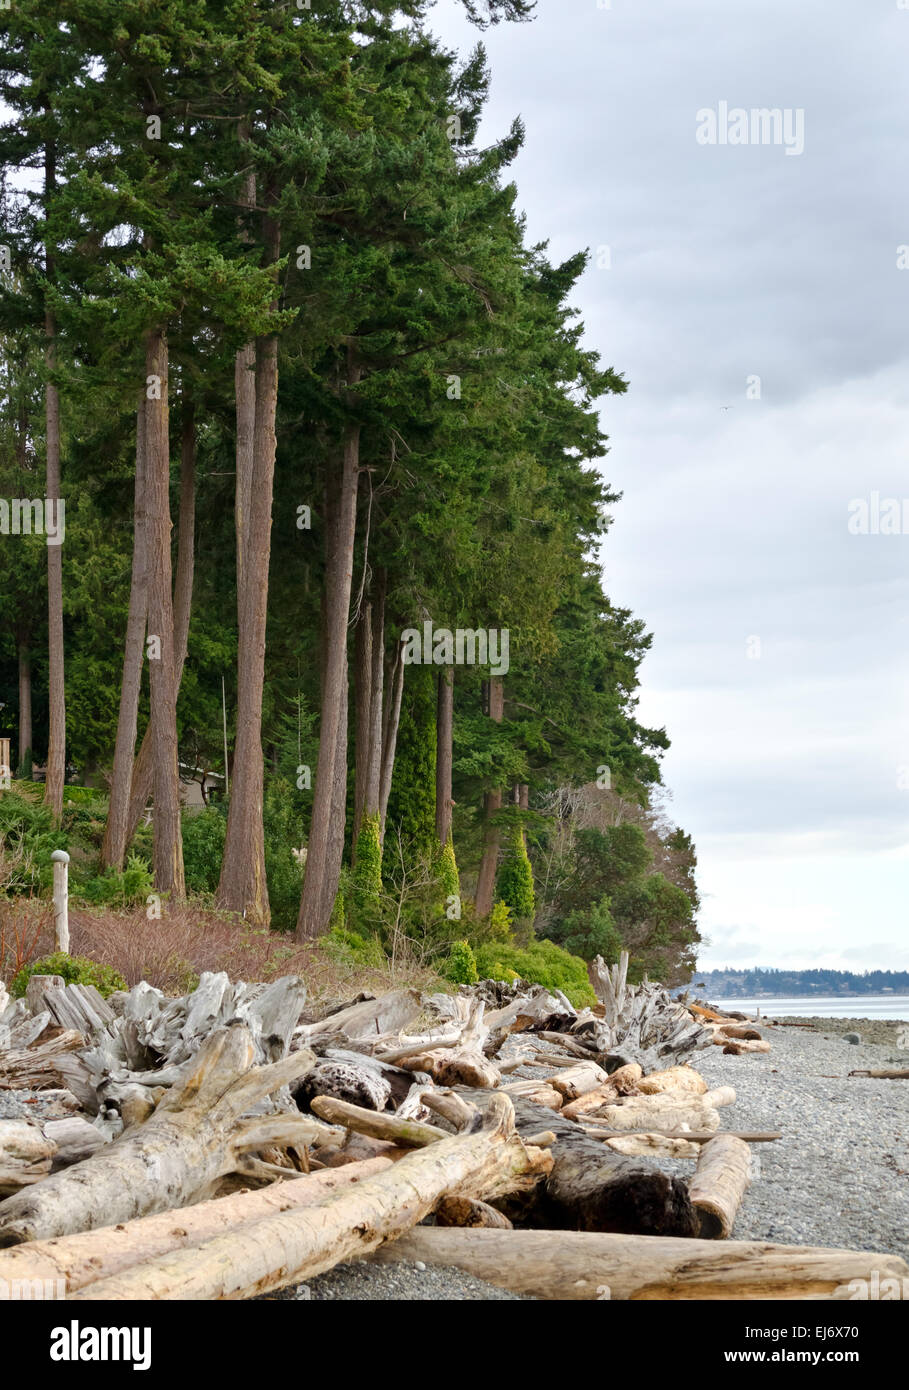 Rugged coastline and beach with driftwood and tall fir trees near Sechelt on the Sunshine Coast in British Columbia, - Stock Image